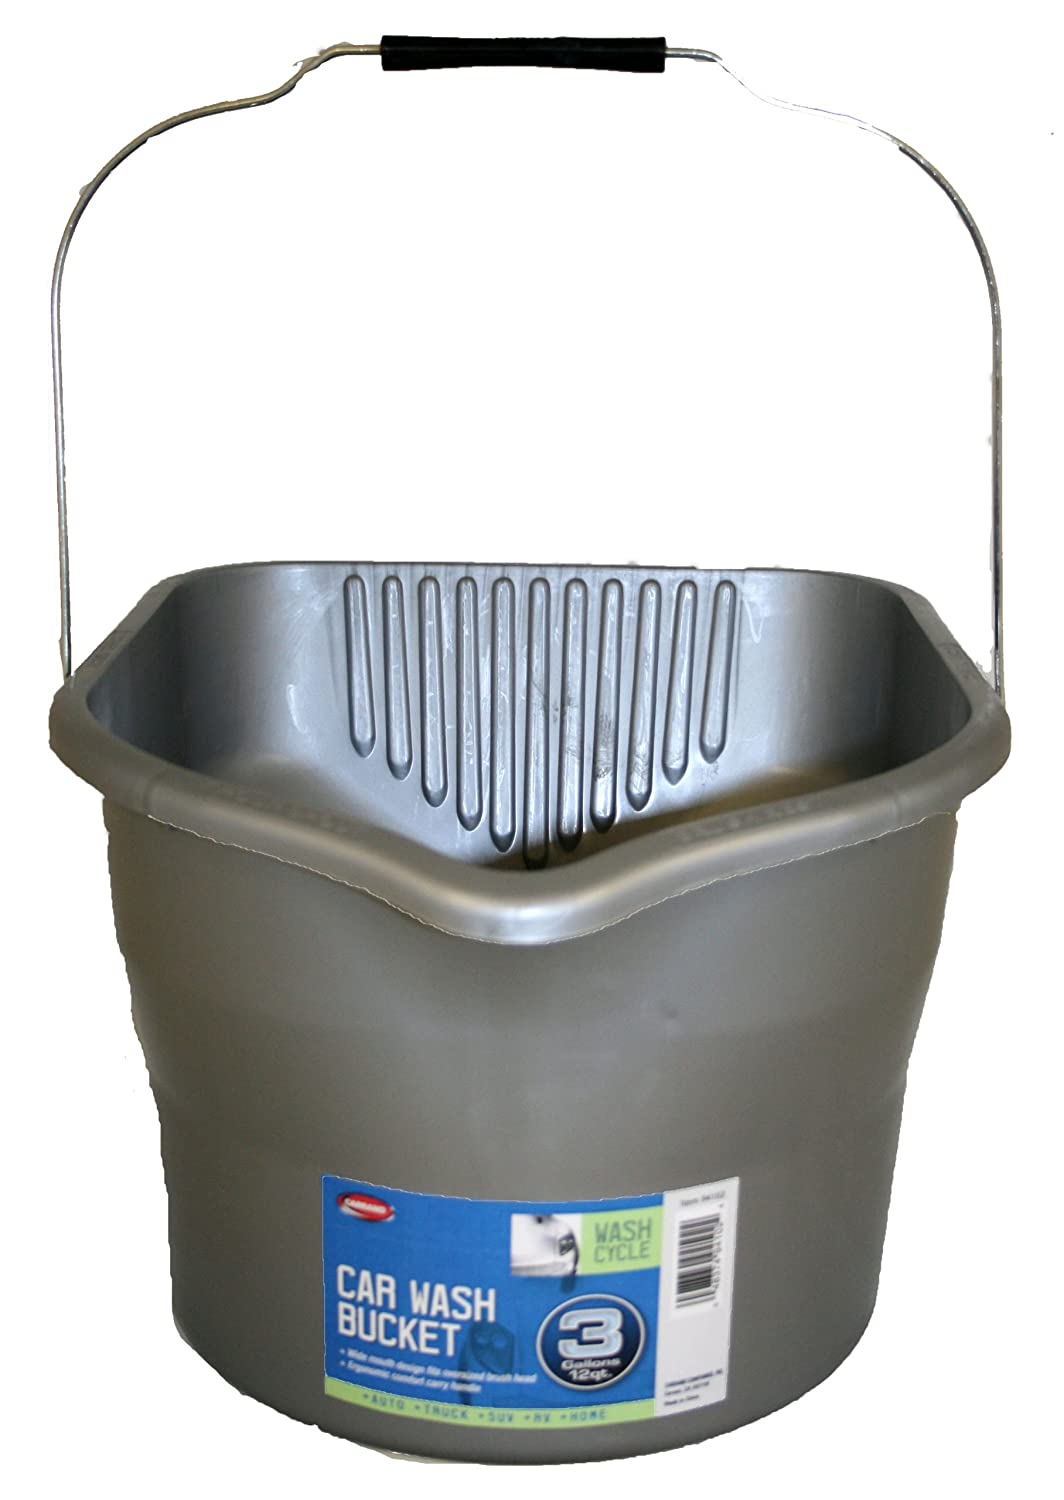 Carrand 94102 Car Wash Bucket, 3 Gallon Capacity